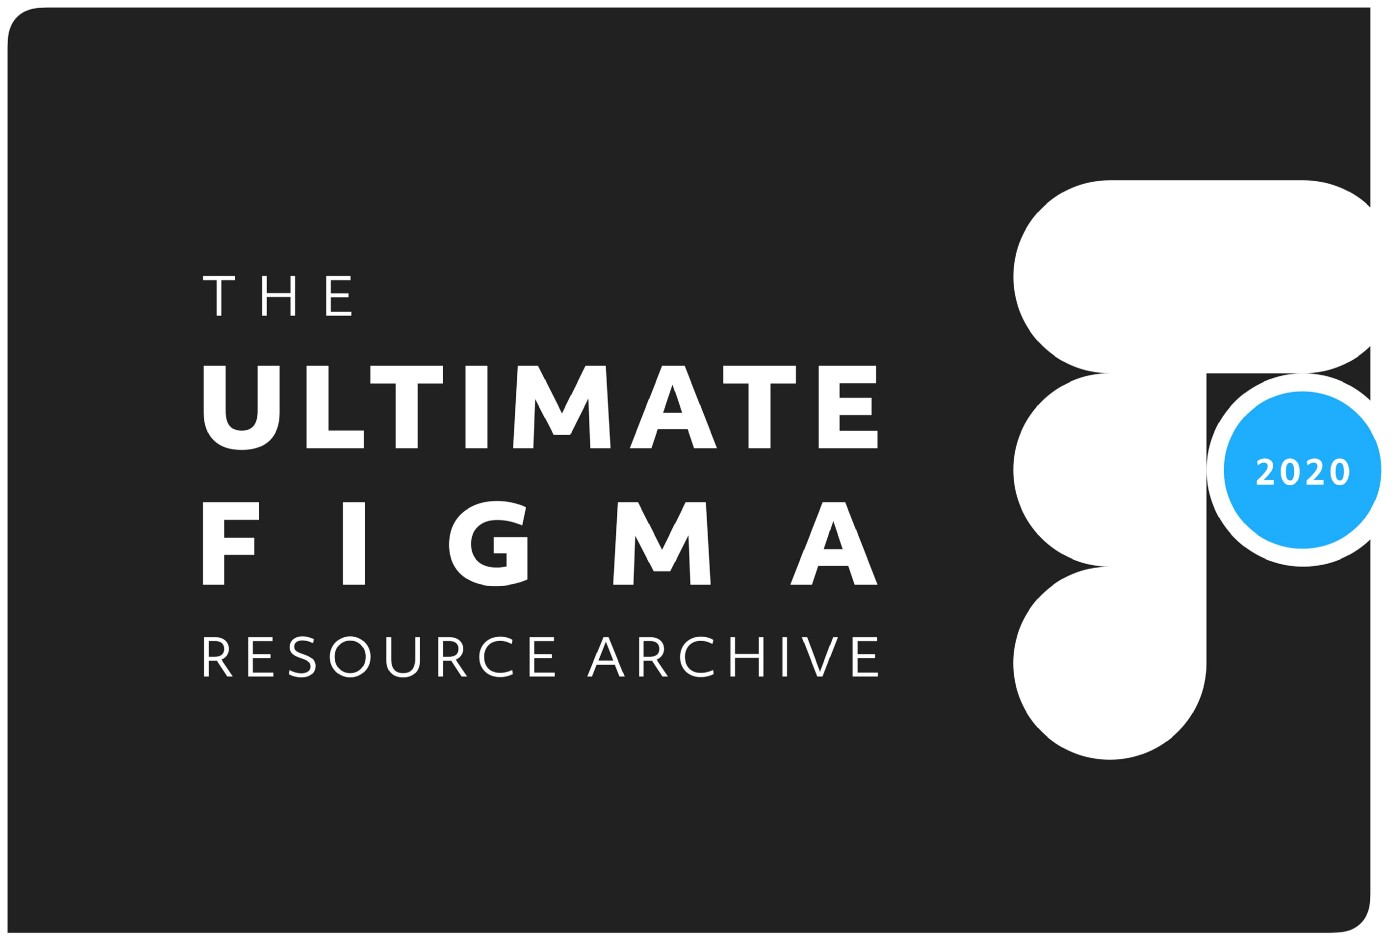 The words 'The ultimate Figma resource archive' in white over a black background